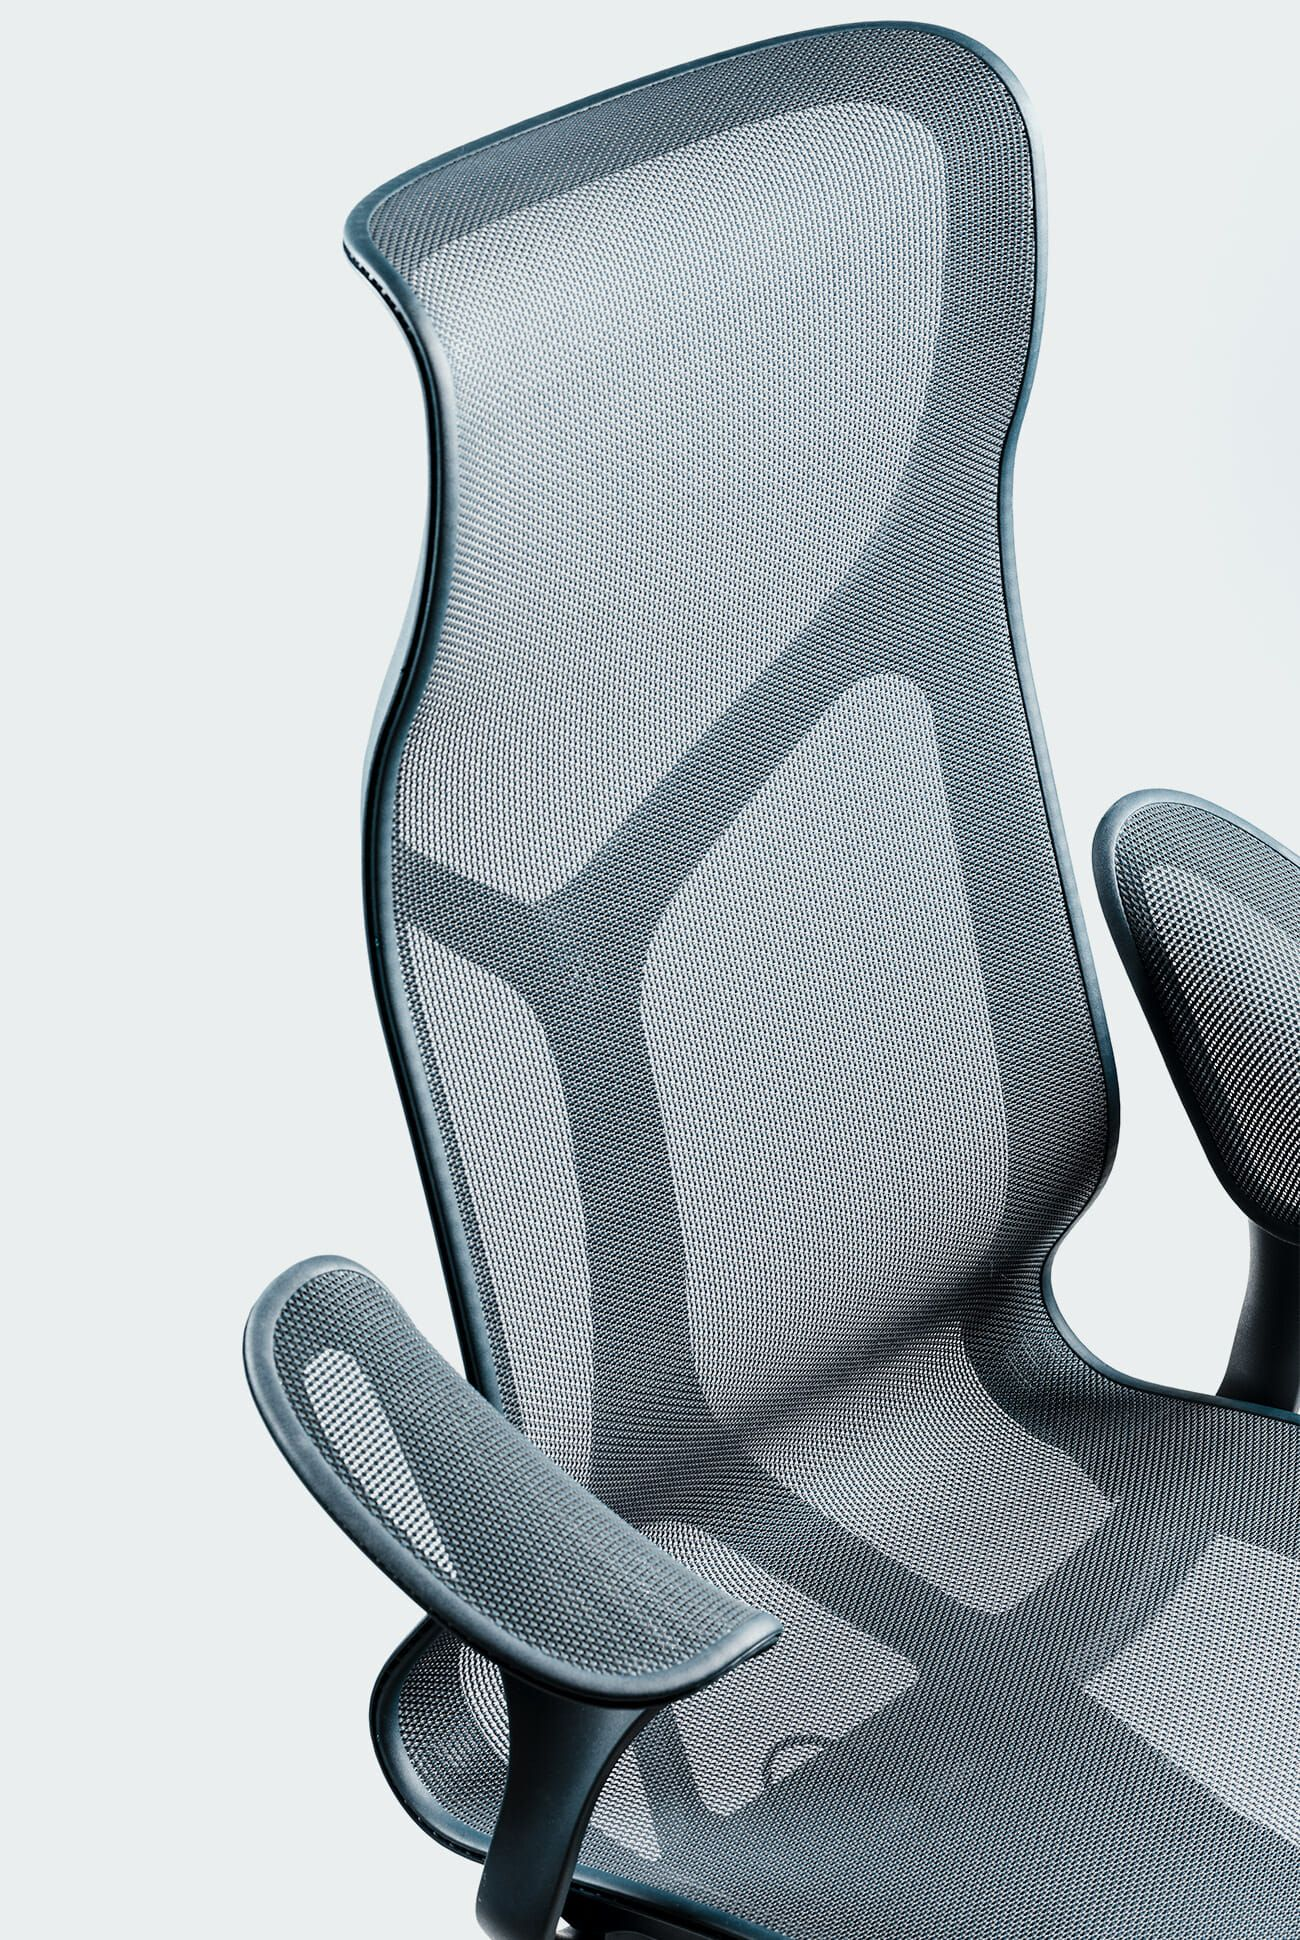 The 15 Best Office Chairs of 2020 Best office chair